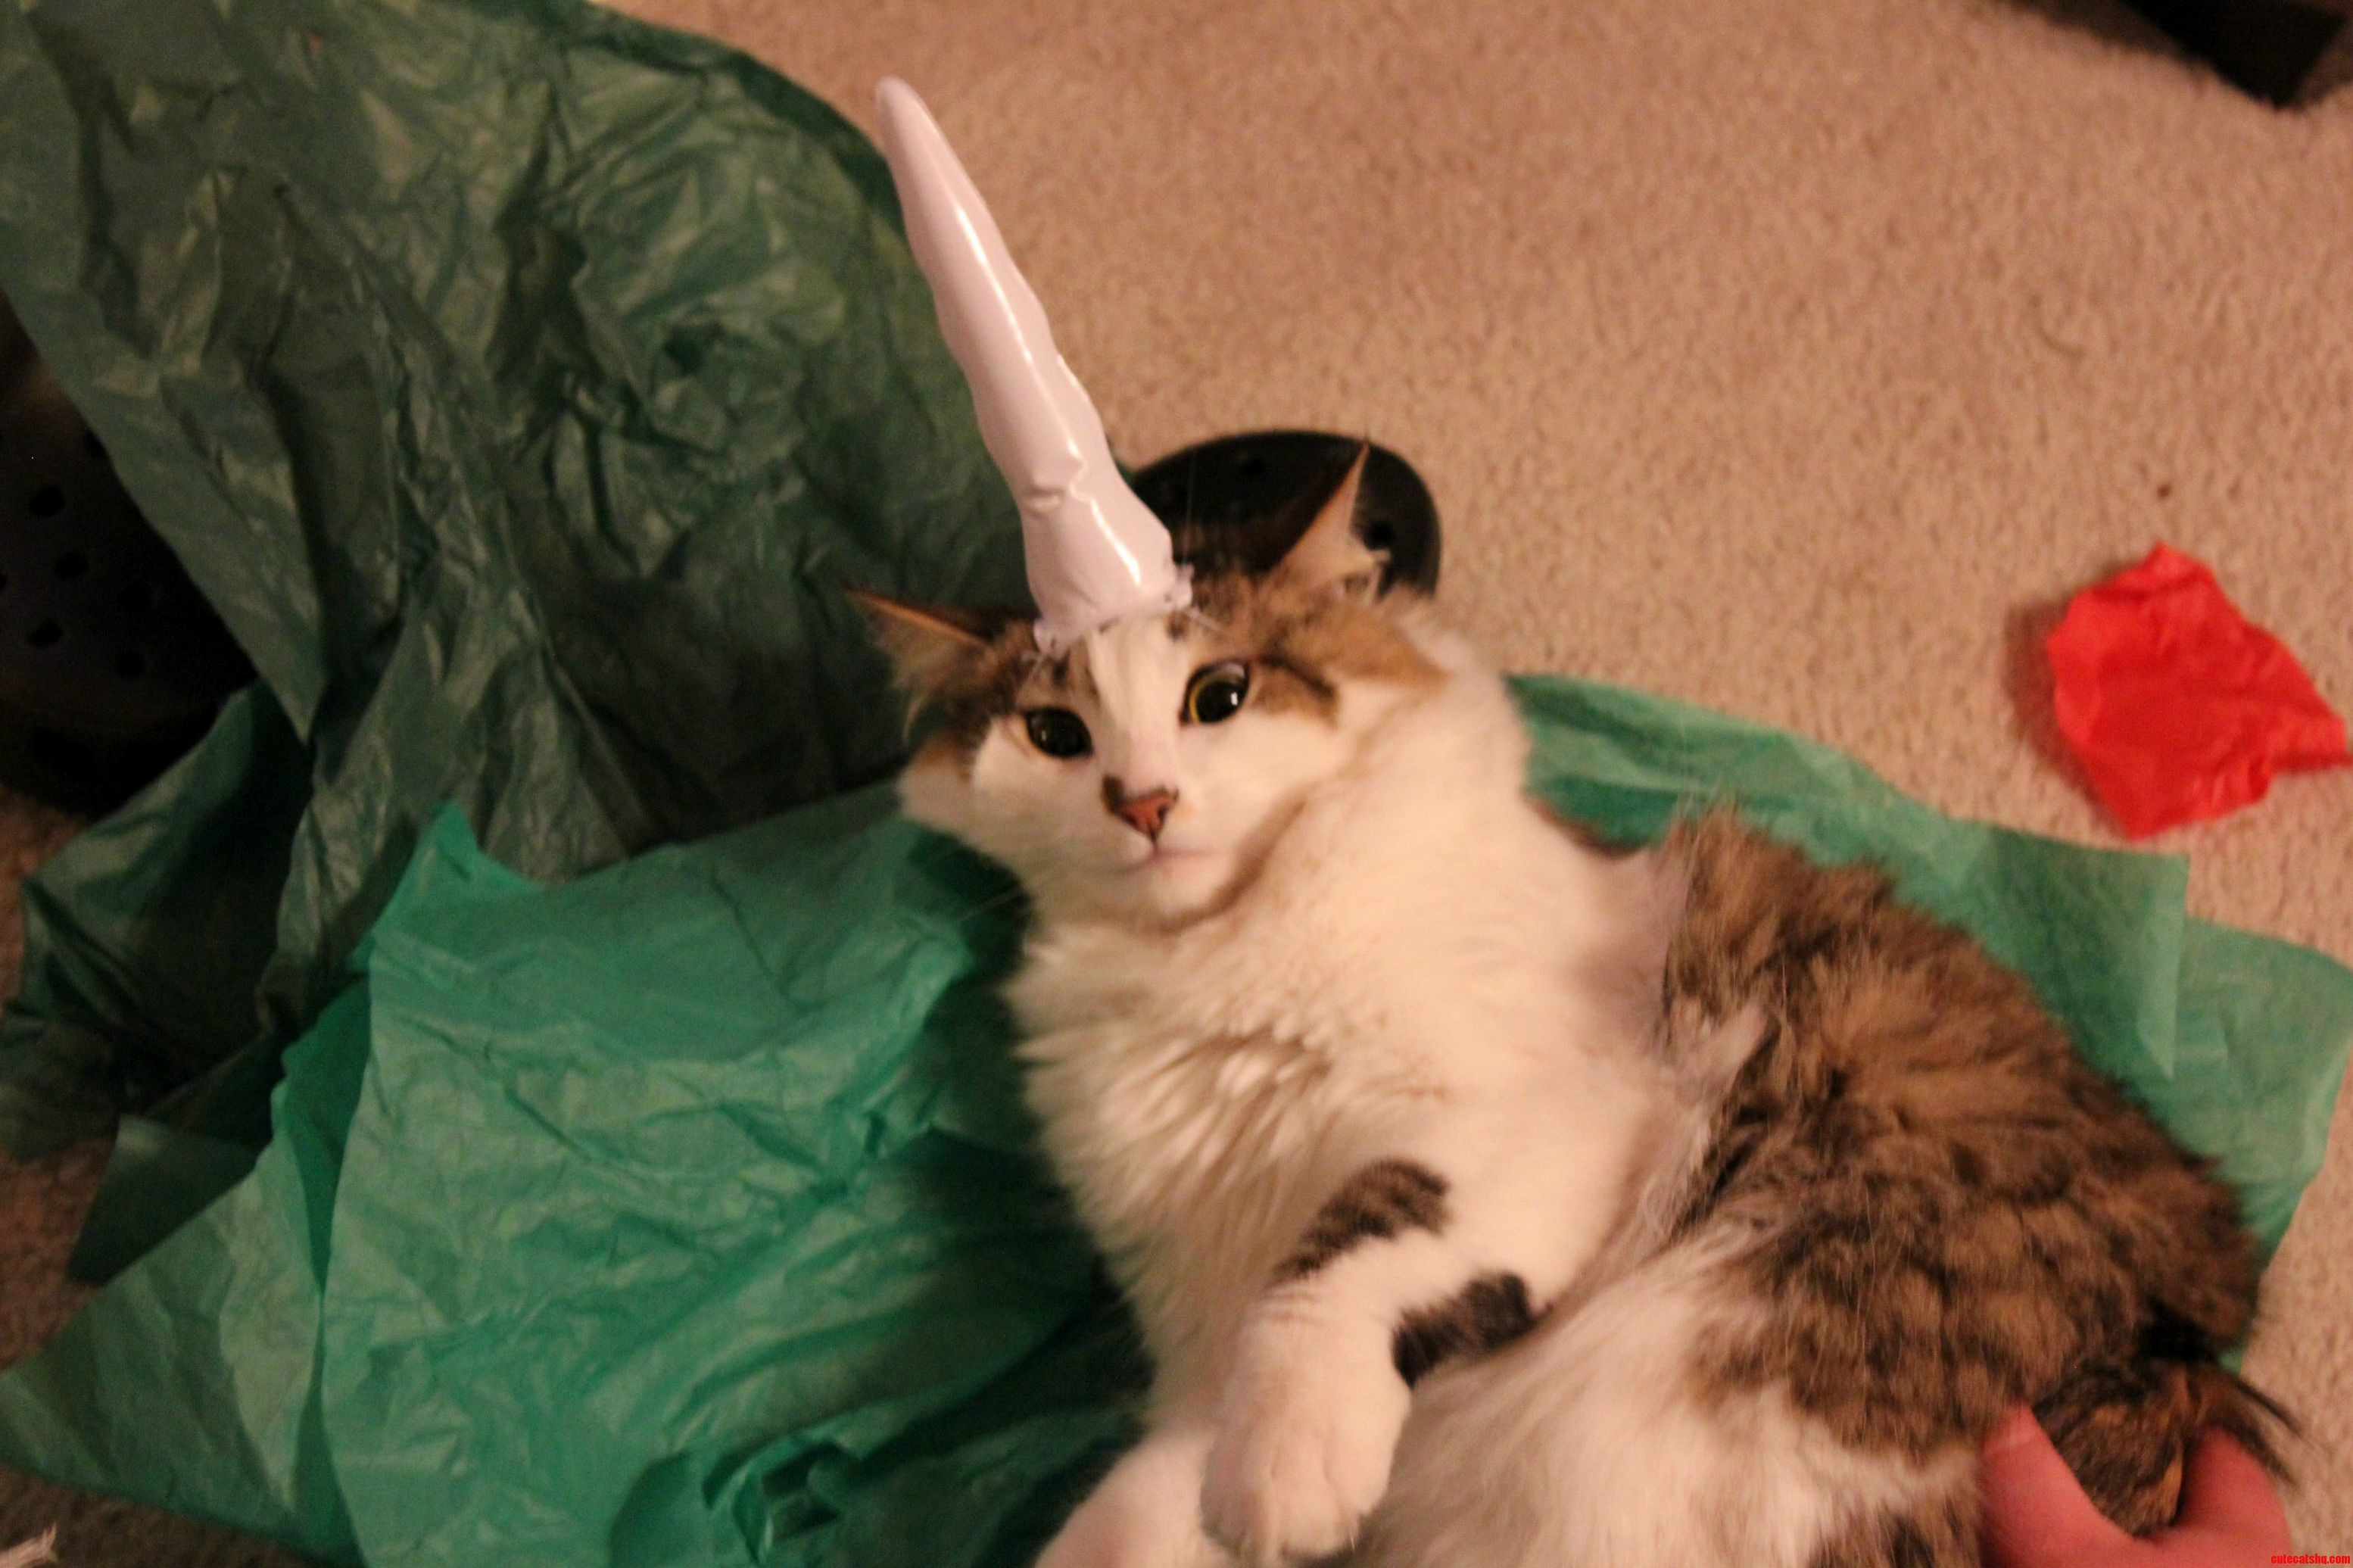 I Submit To You My Super Soft Fat Toni Sporting Her Unihorn P.S. She Loves It